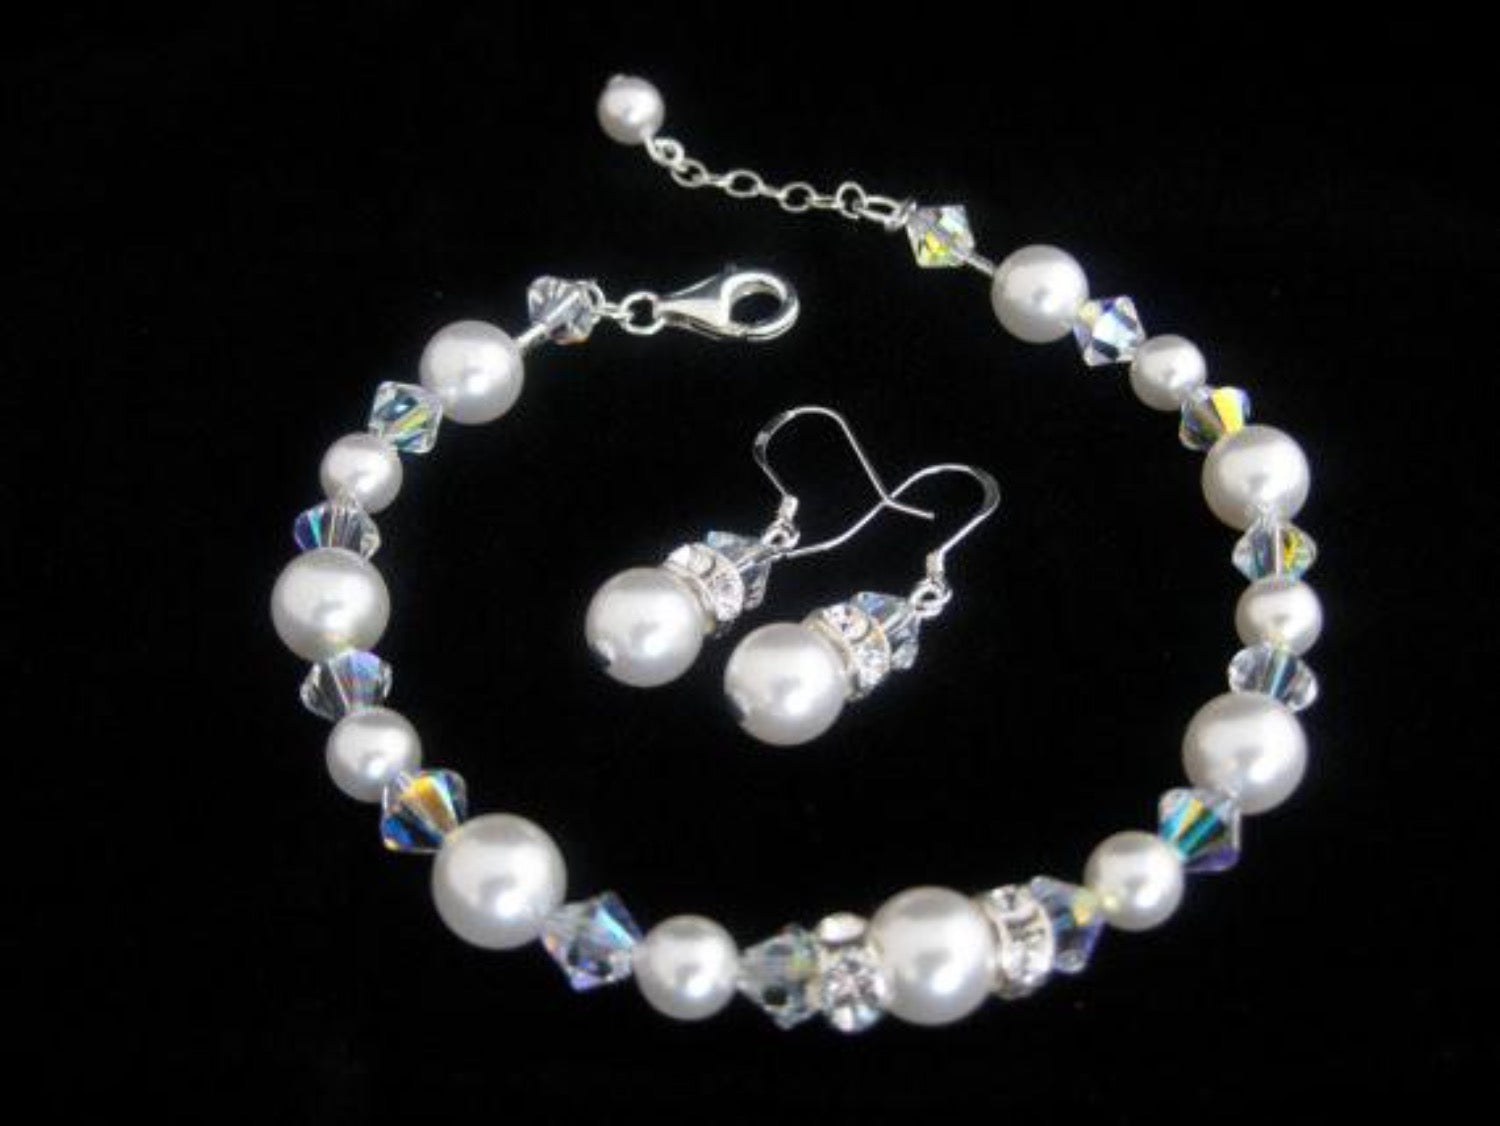 Wedding pearl bracelet and earrings for brides - Clairesbridal - 1